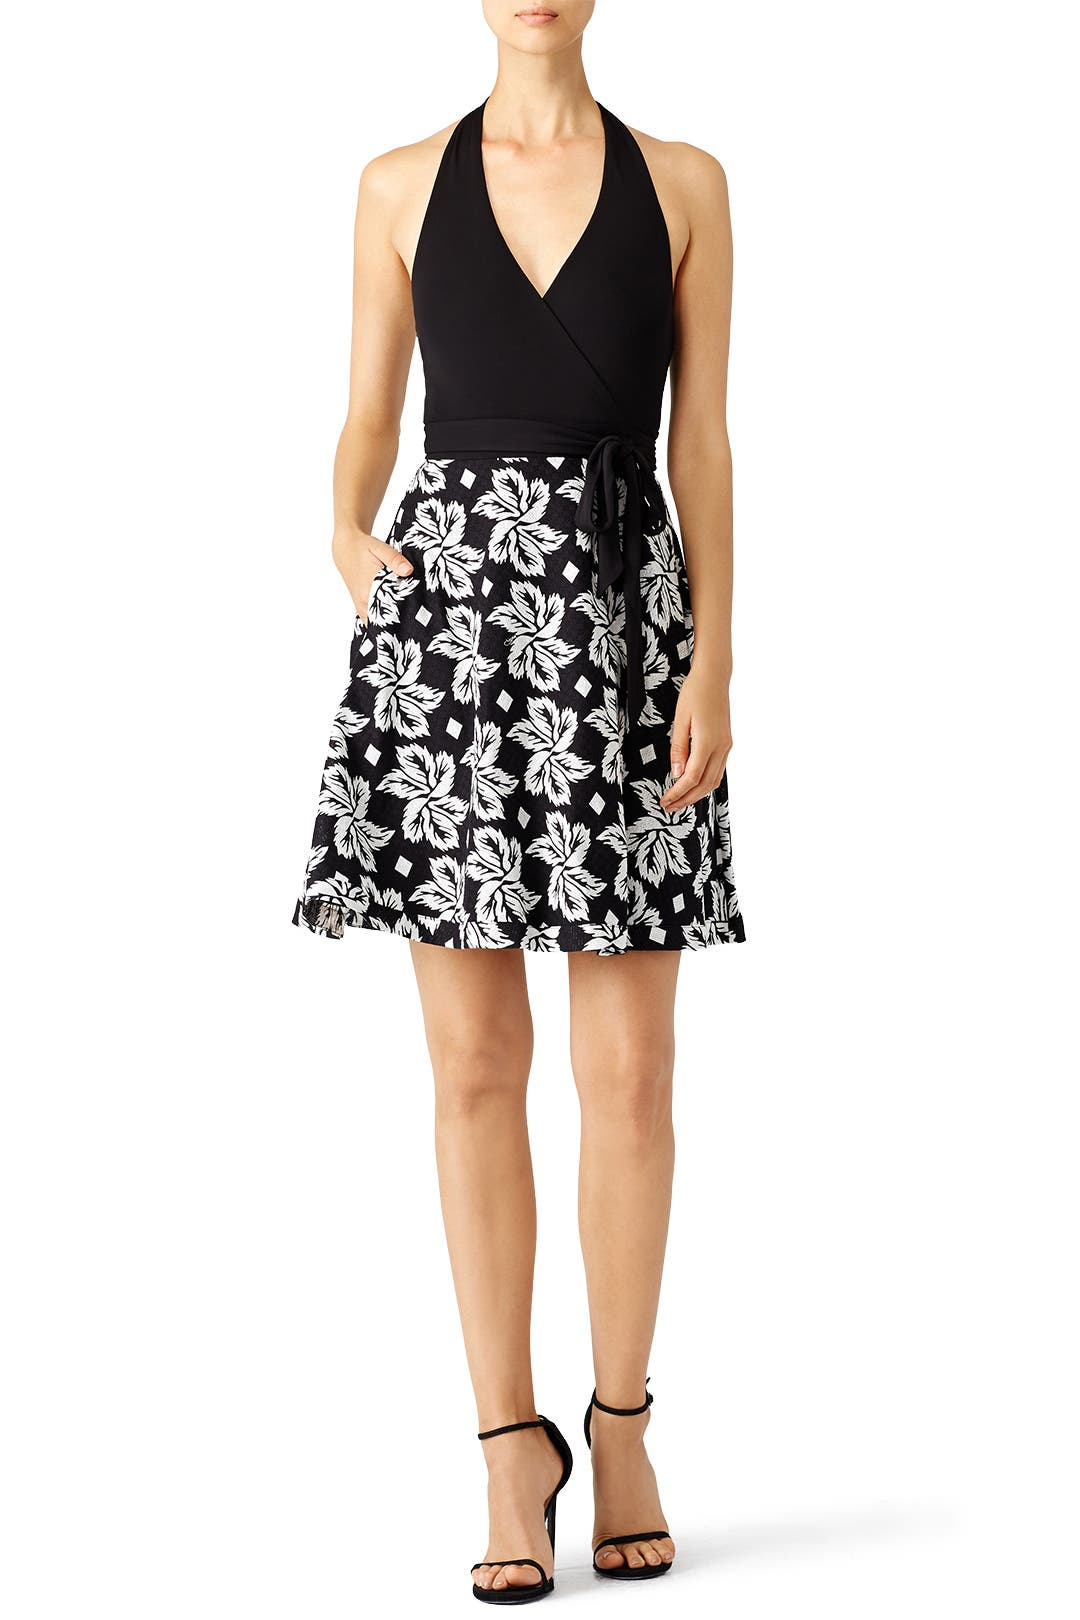 a6d5da84728e7 Dresses - Diane von Furstenberg Great selection and prices for ...